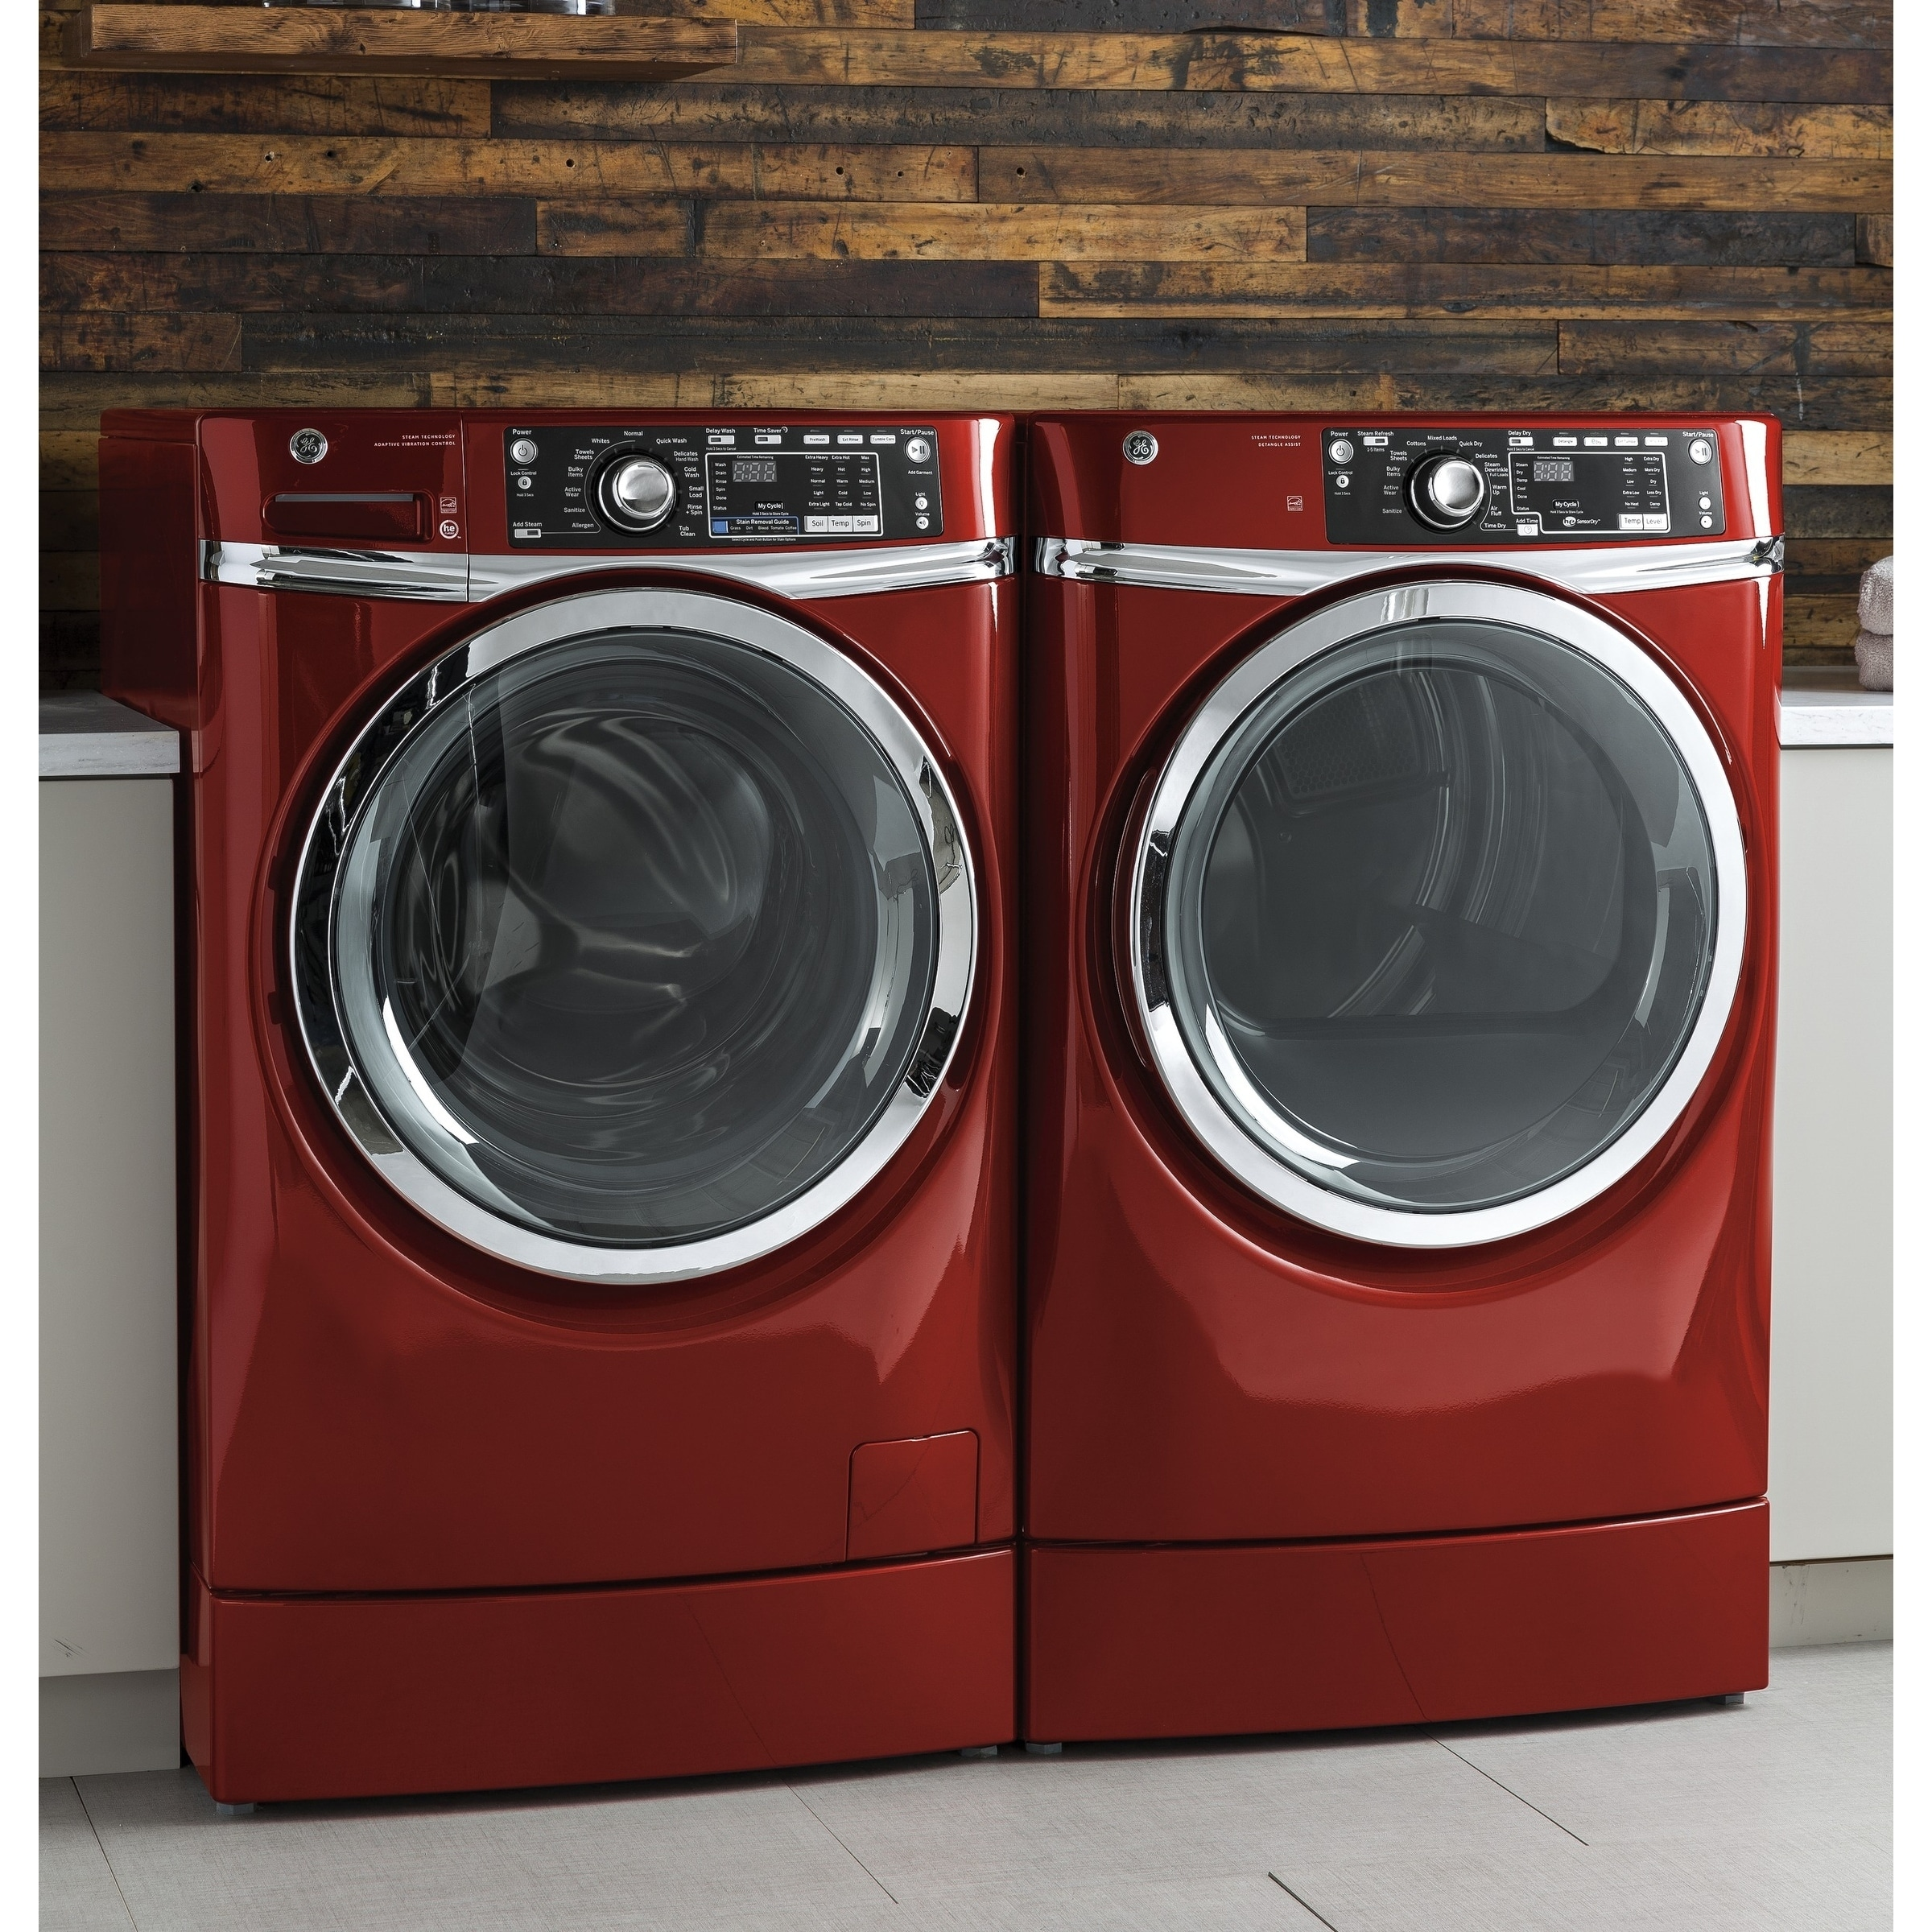 Ge Rightheight Design Series Gfd49erpkrr 28 Inch Electric Dryer And Front Load Washer Set Free Shipping Today 20105262